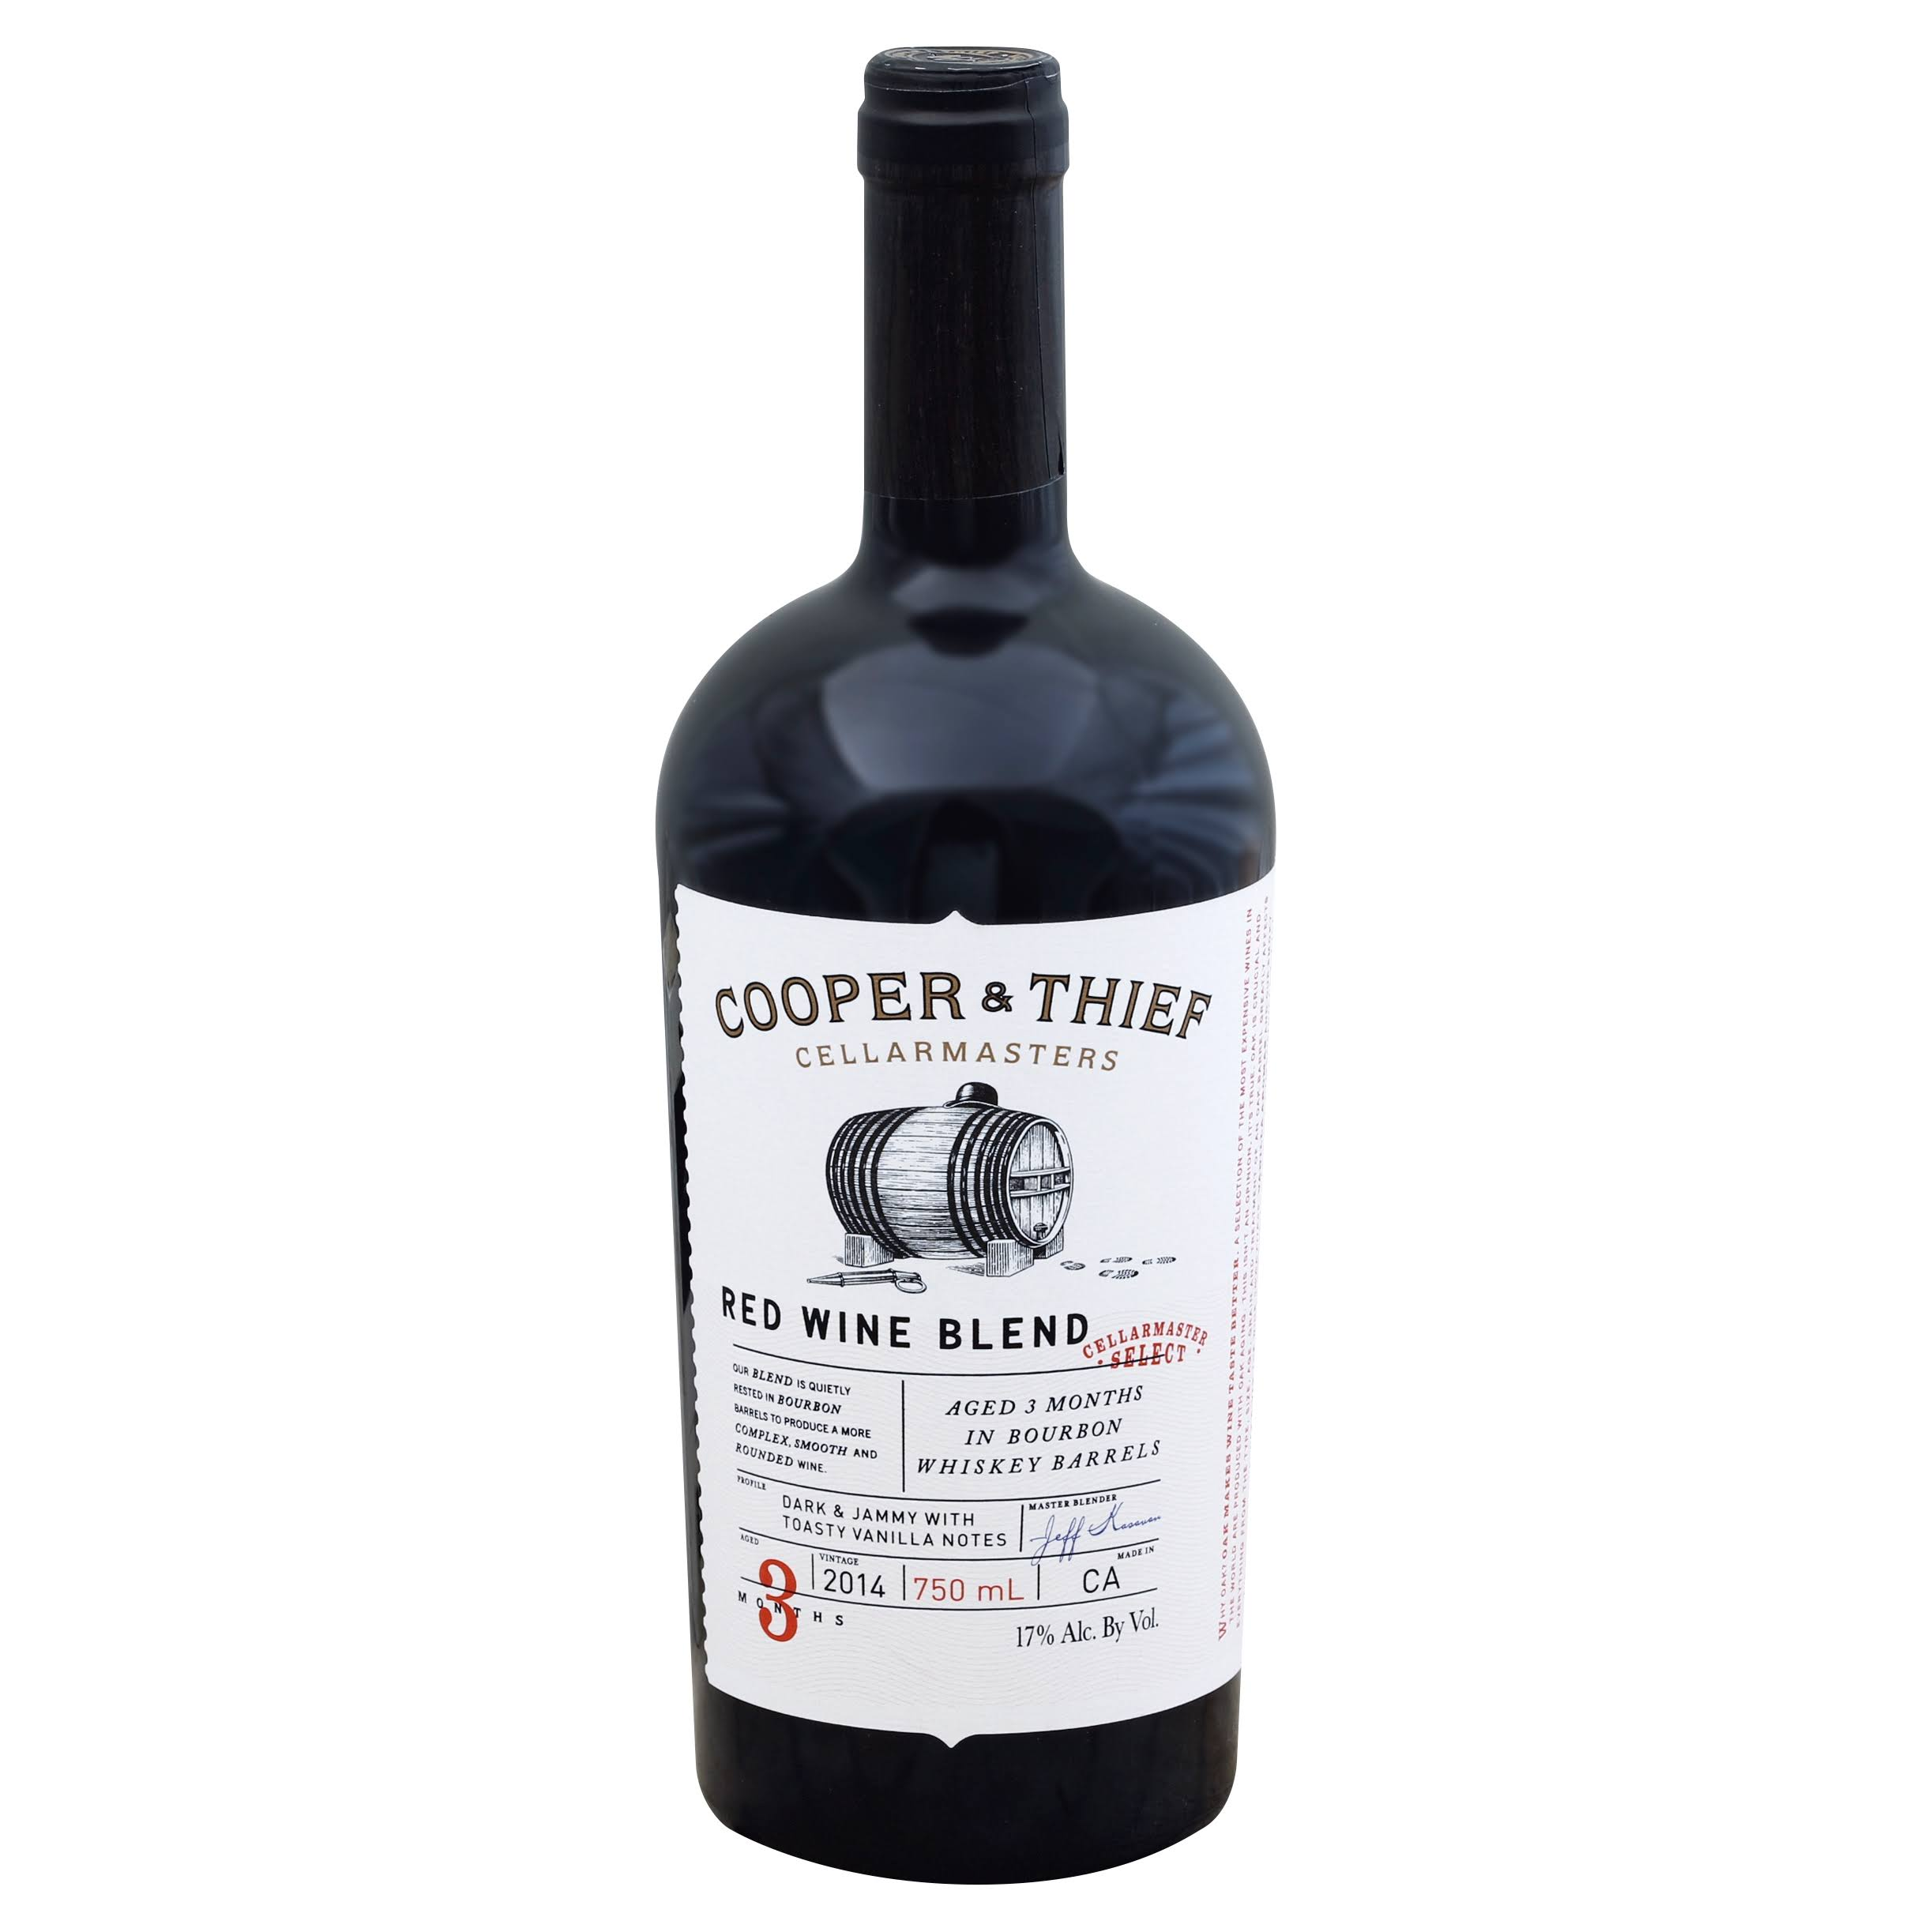 Cooper & Thief Red Wine Blend, California, 2014 - 750 ml